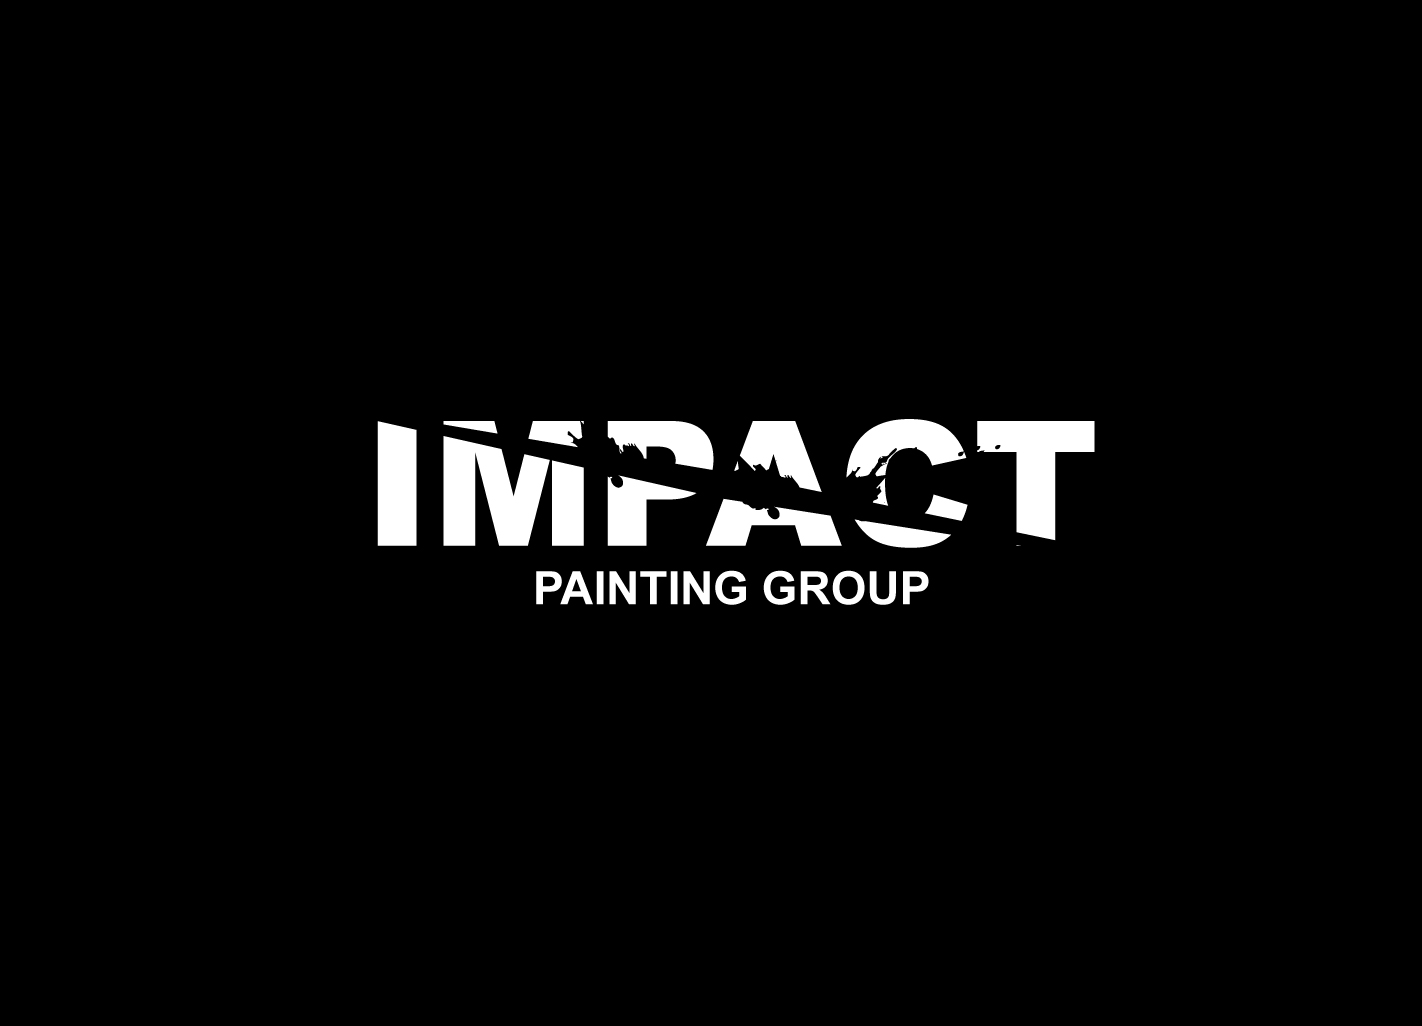 modern professional painting logo design for impact